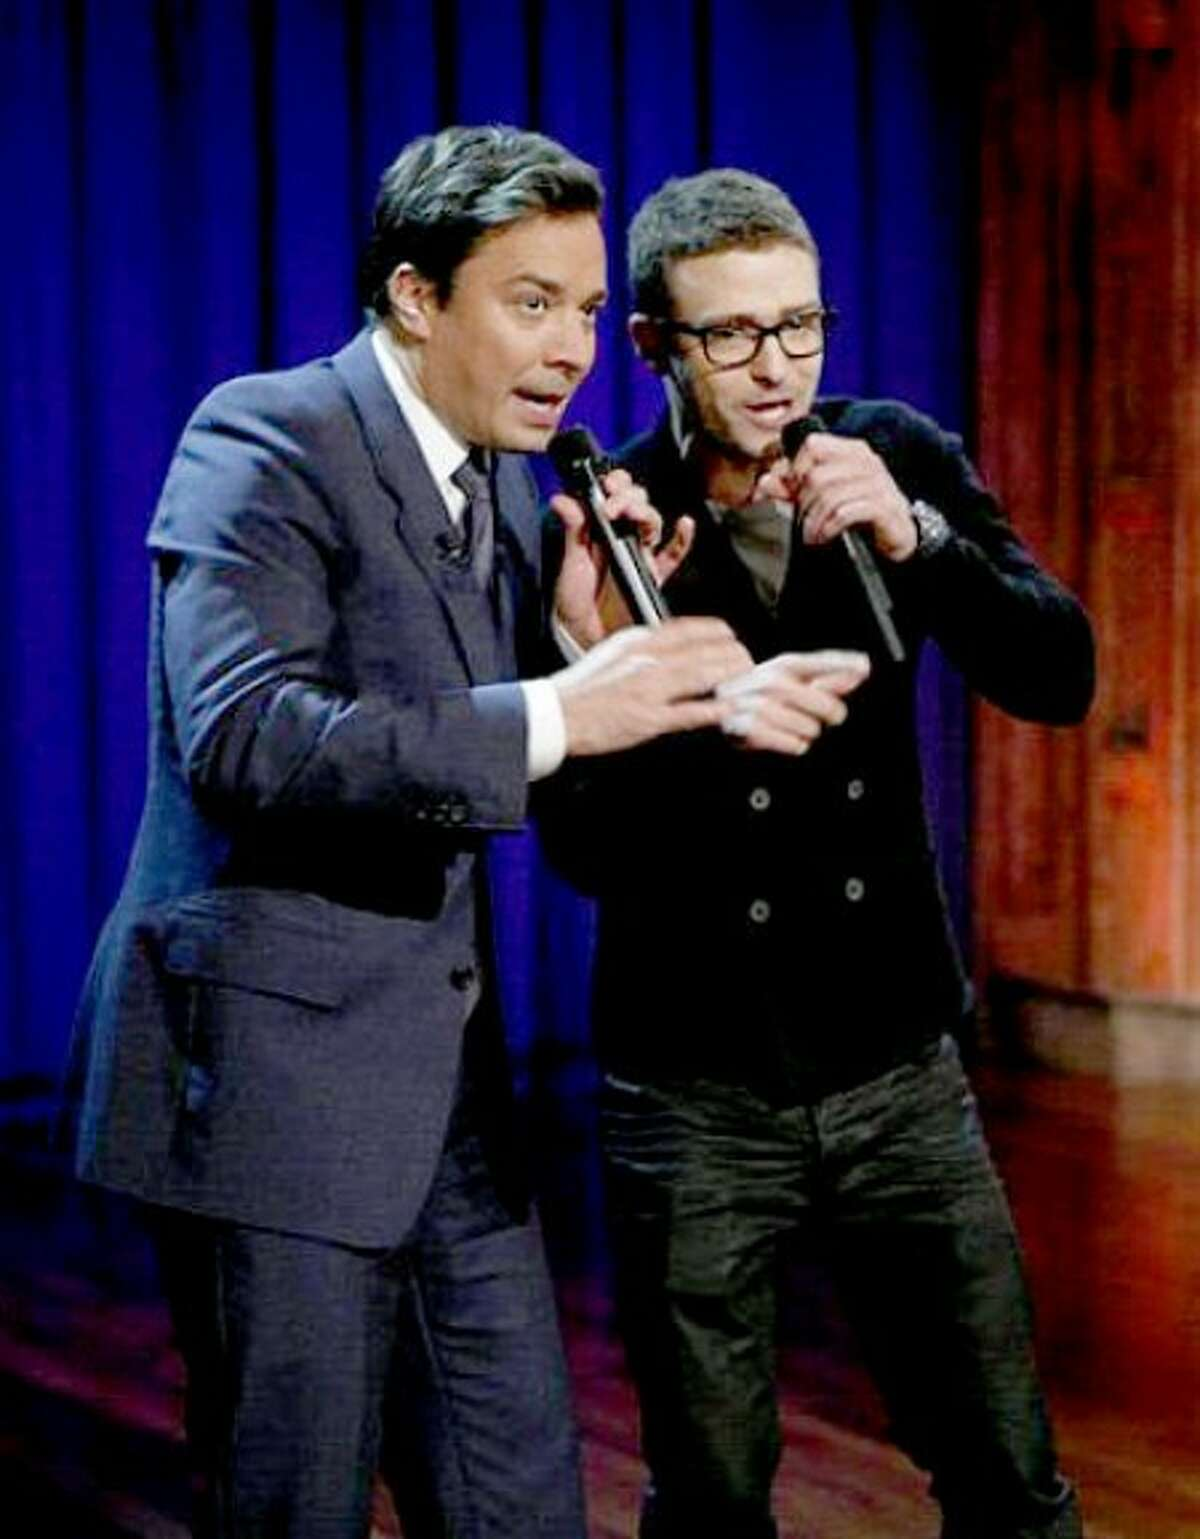 In this publicity image released by NBC, host Jimmy Fallon, left, performs with singer Justin Timberlake during